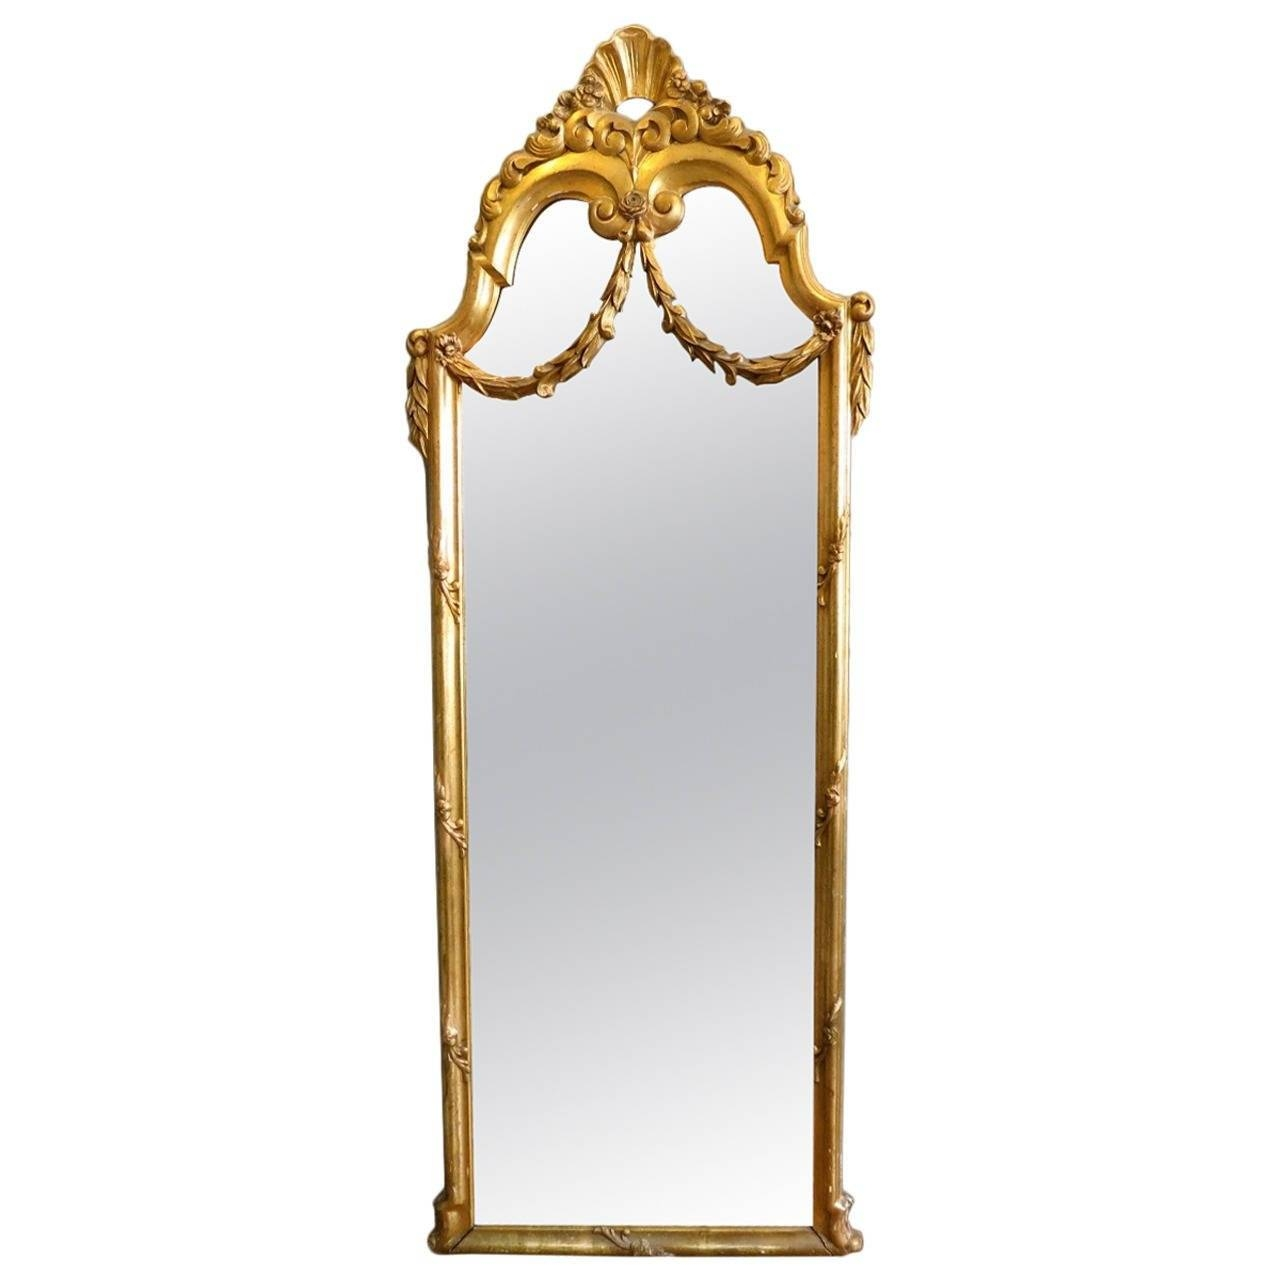 Antique French Gold Gilt Floor Standing Mirror At 1Stdibs regarding Antique Gold Mirrors (Image 6 of 25)